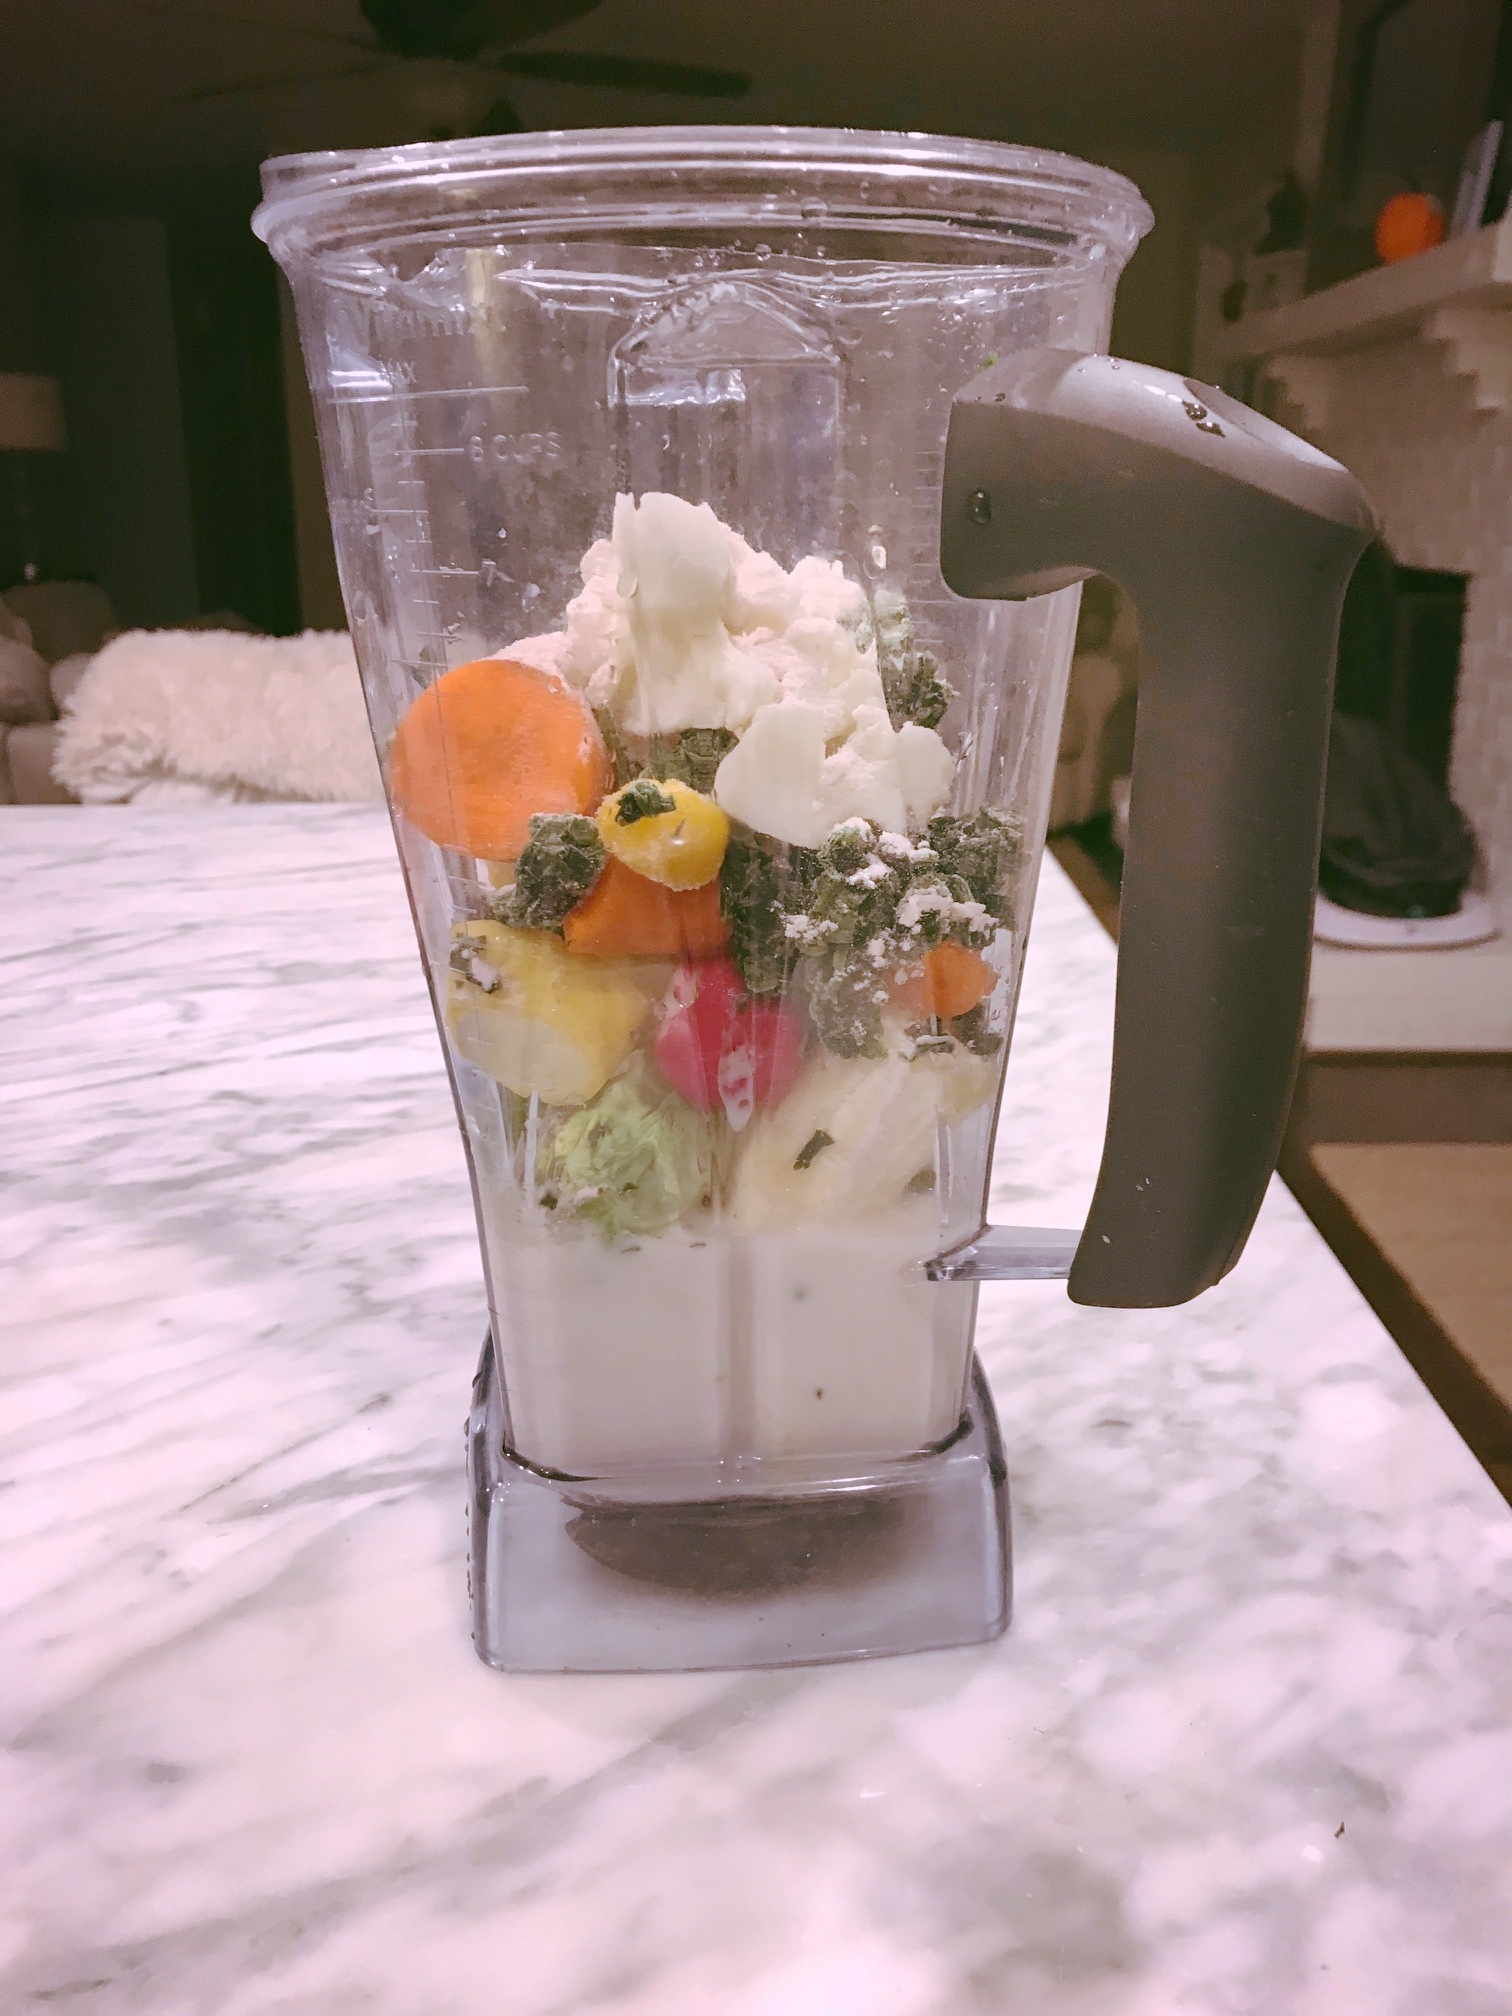 You won't find this on the menu at Planet Smoothie: Radish, Brussels Sprouts, Carrot, Kale, Spinach, Tomato, Squash & Cauliflower.